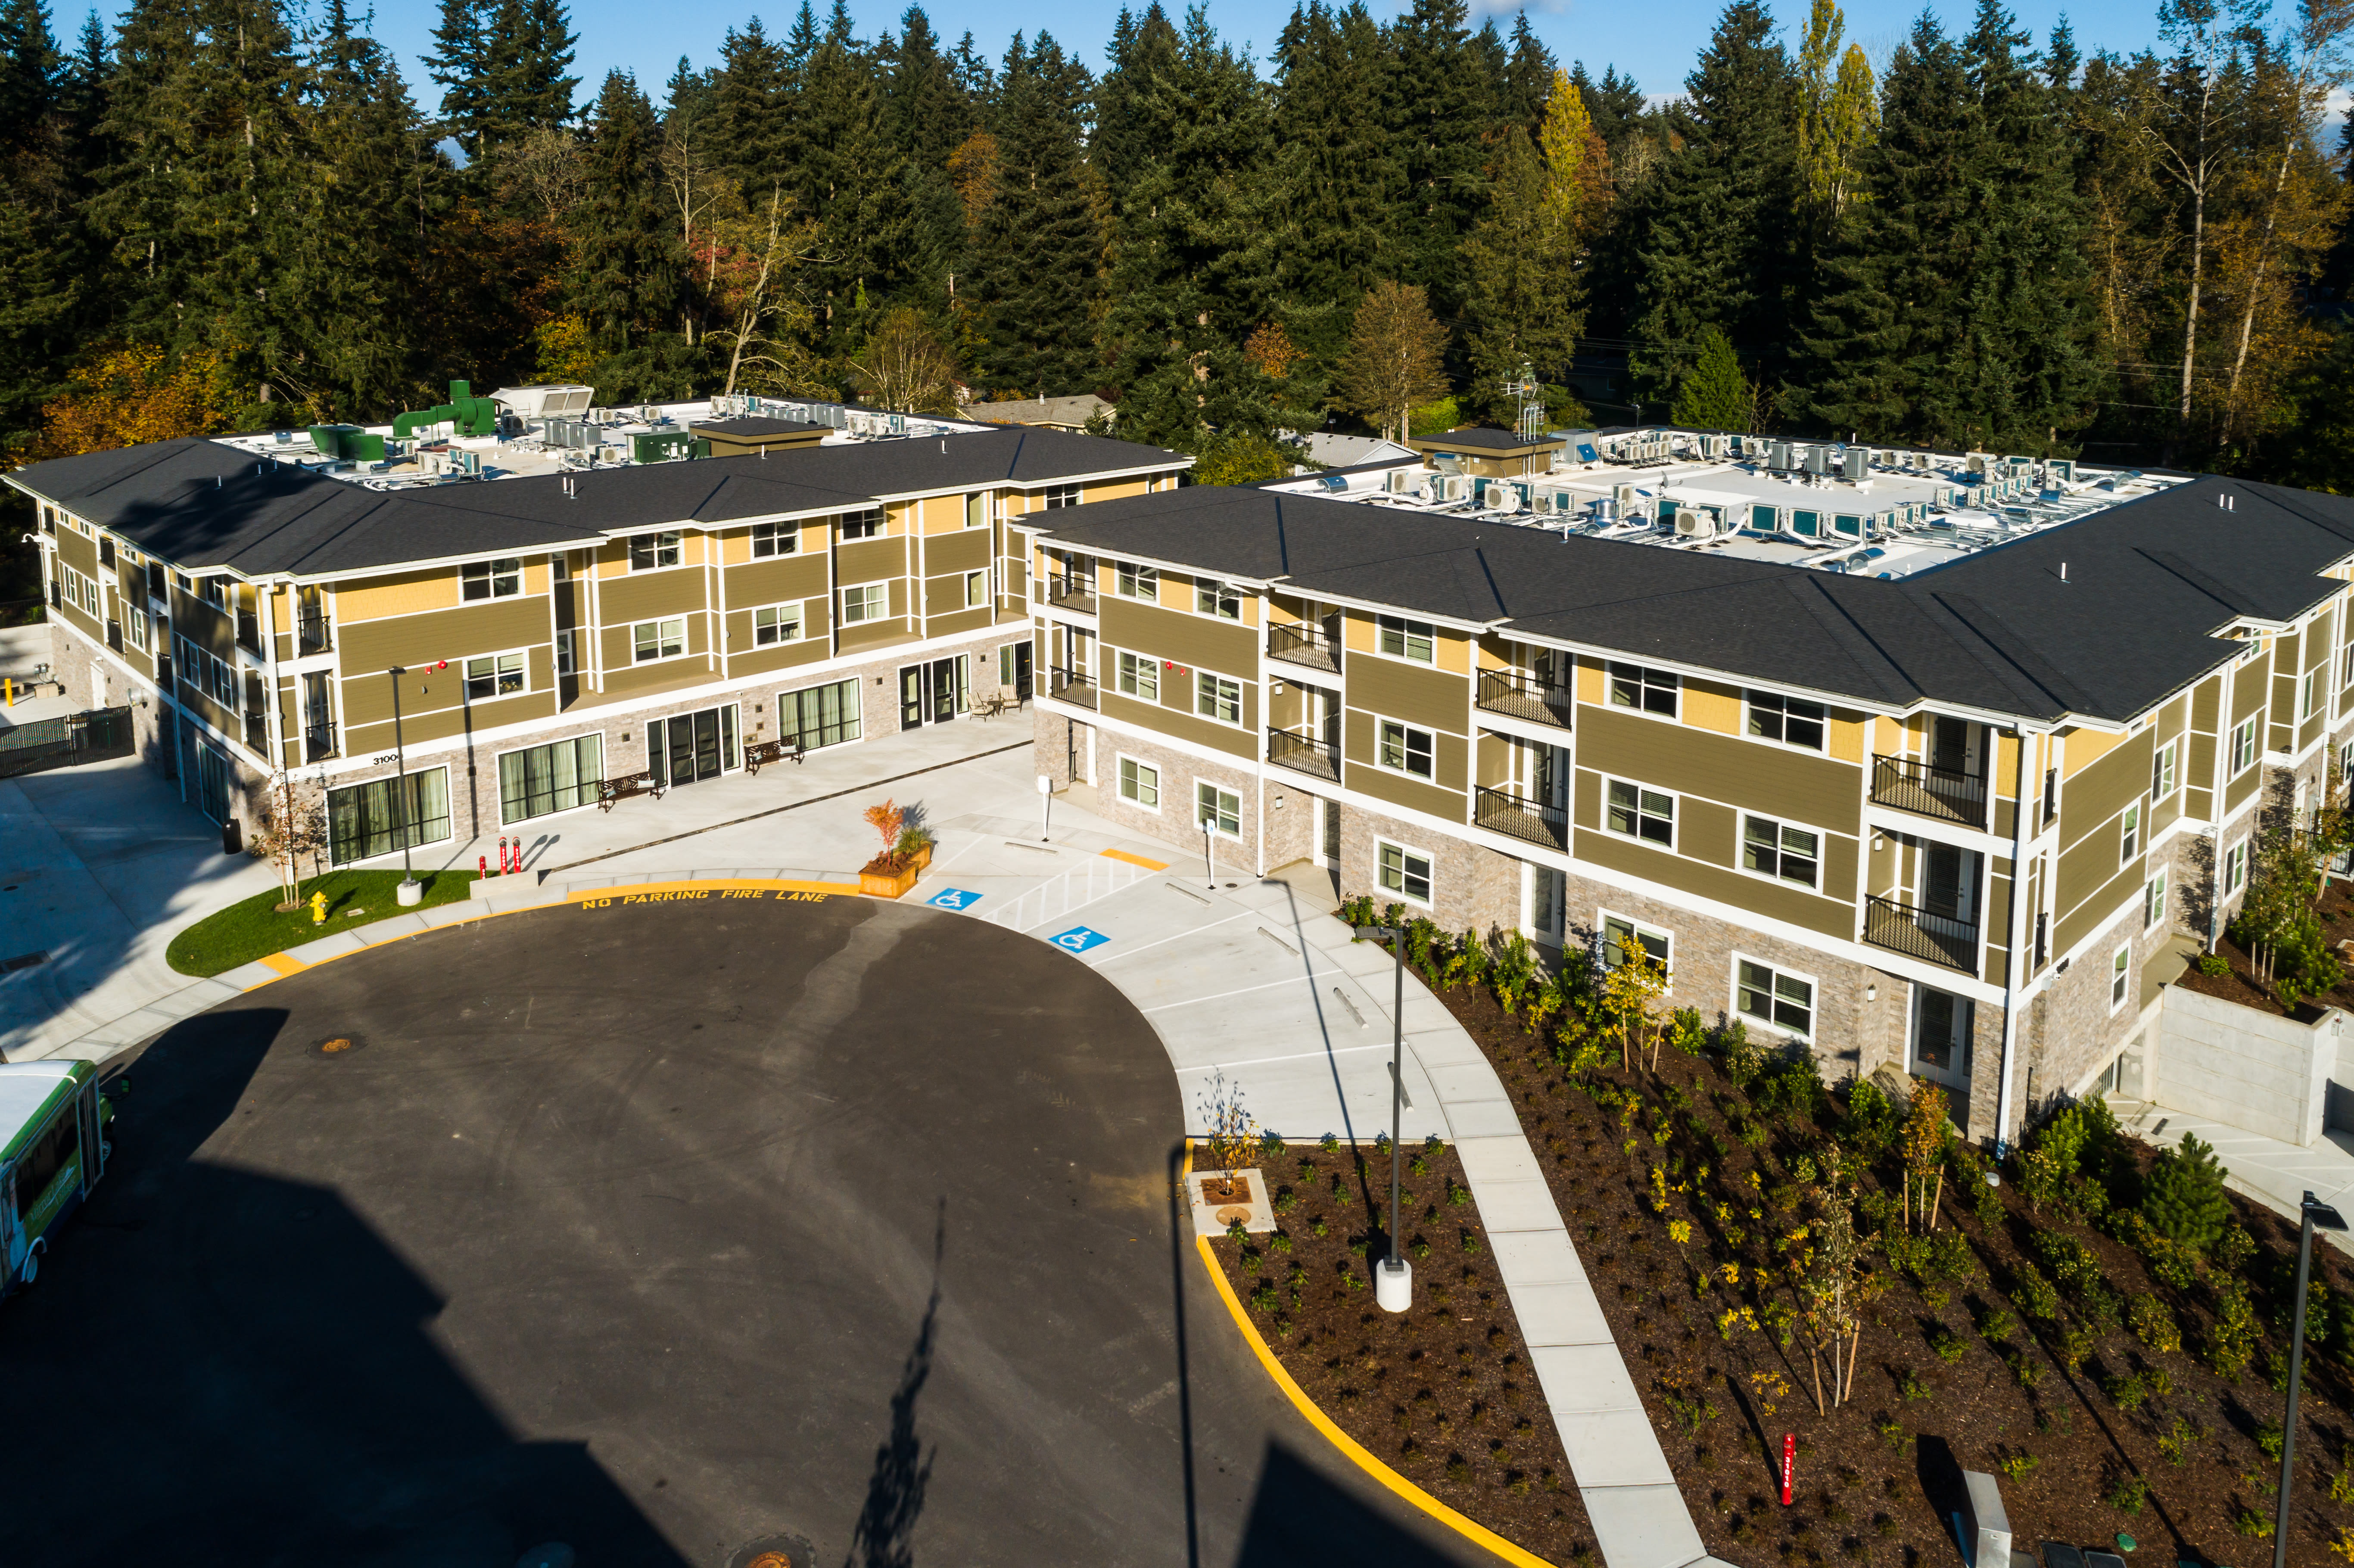 Ariel View of Assisted Living and Memory Care Campus at Mirror Lake Village Senior Living Community in Federal Way, WA